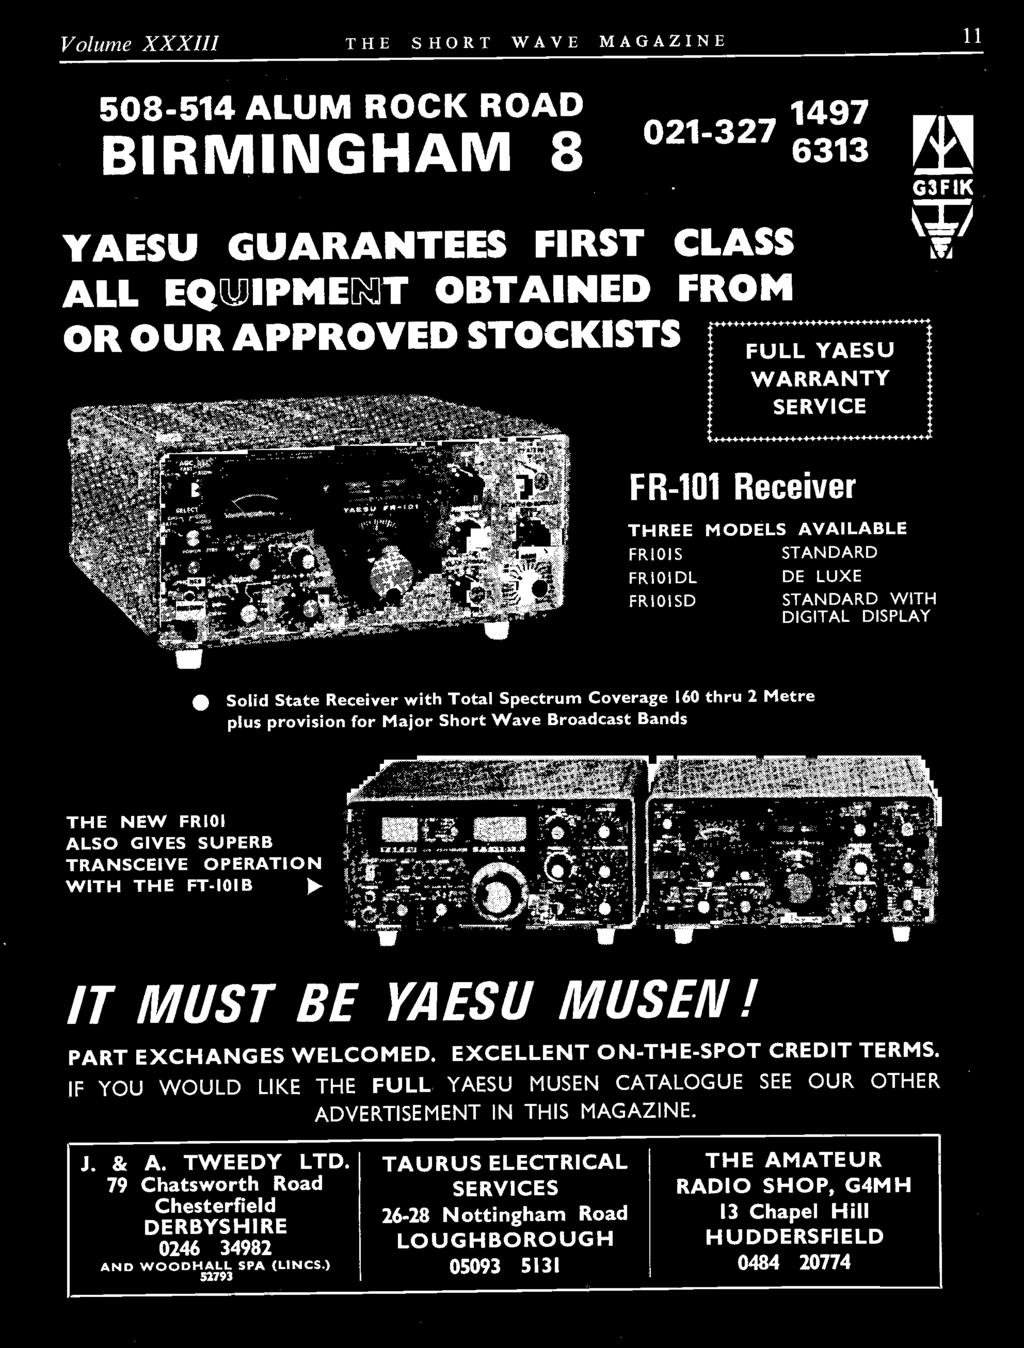 Mistreating Your Rig Communications Products Decca Besides Yaesu Mic Wiring Diagrams On Rca Cable 3 Pole Diagram If You Would Like The Full Musen Catalogue See Our Other Advertisement In This Magazine